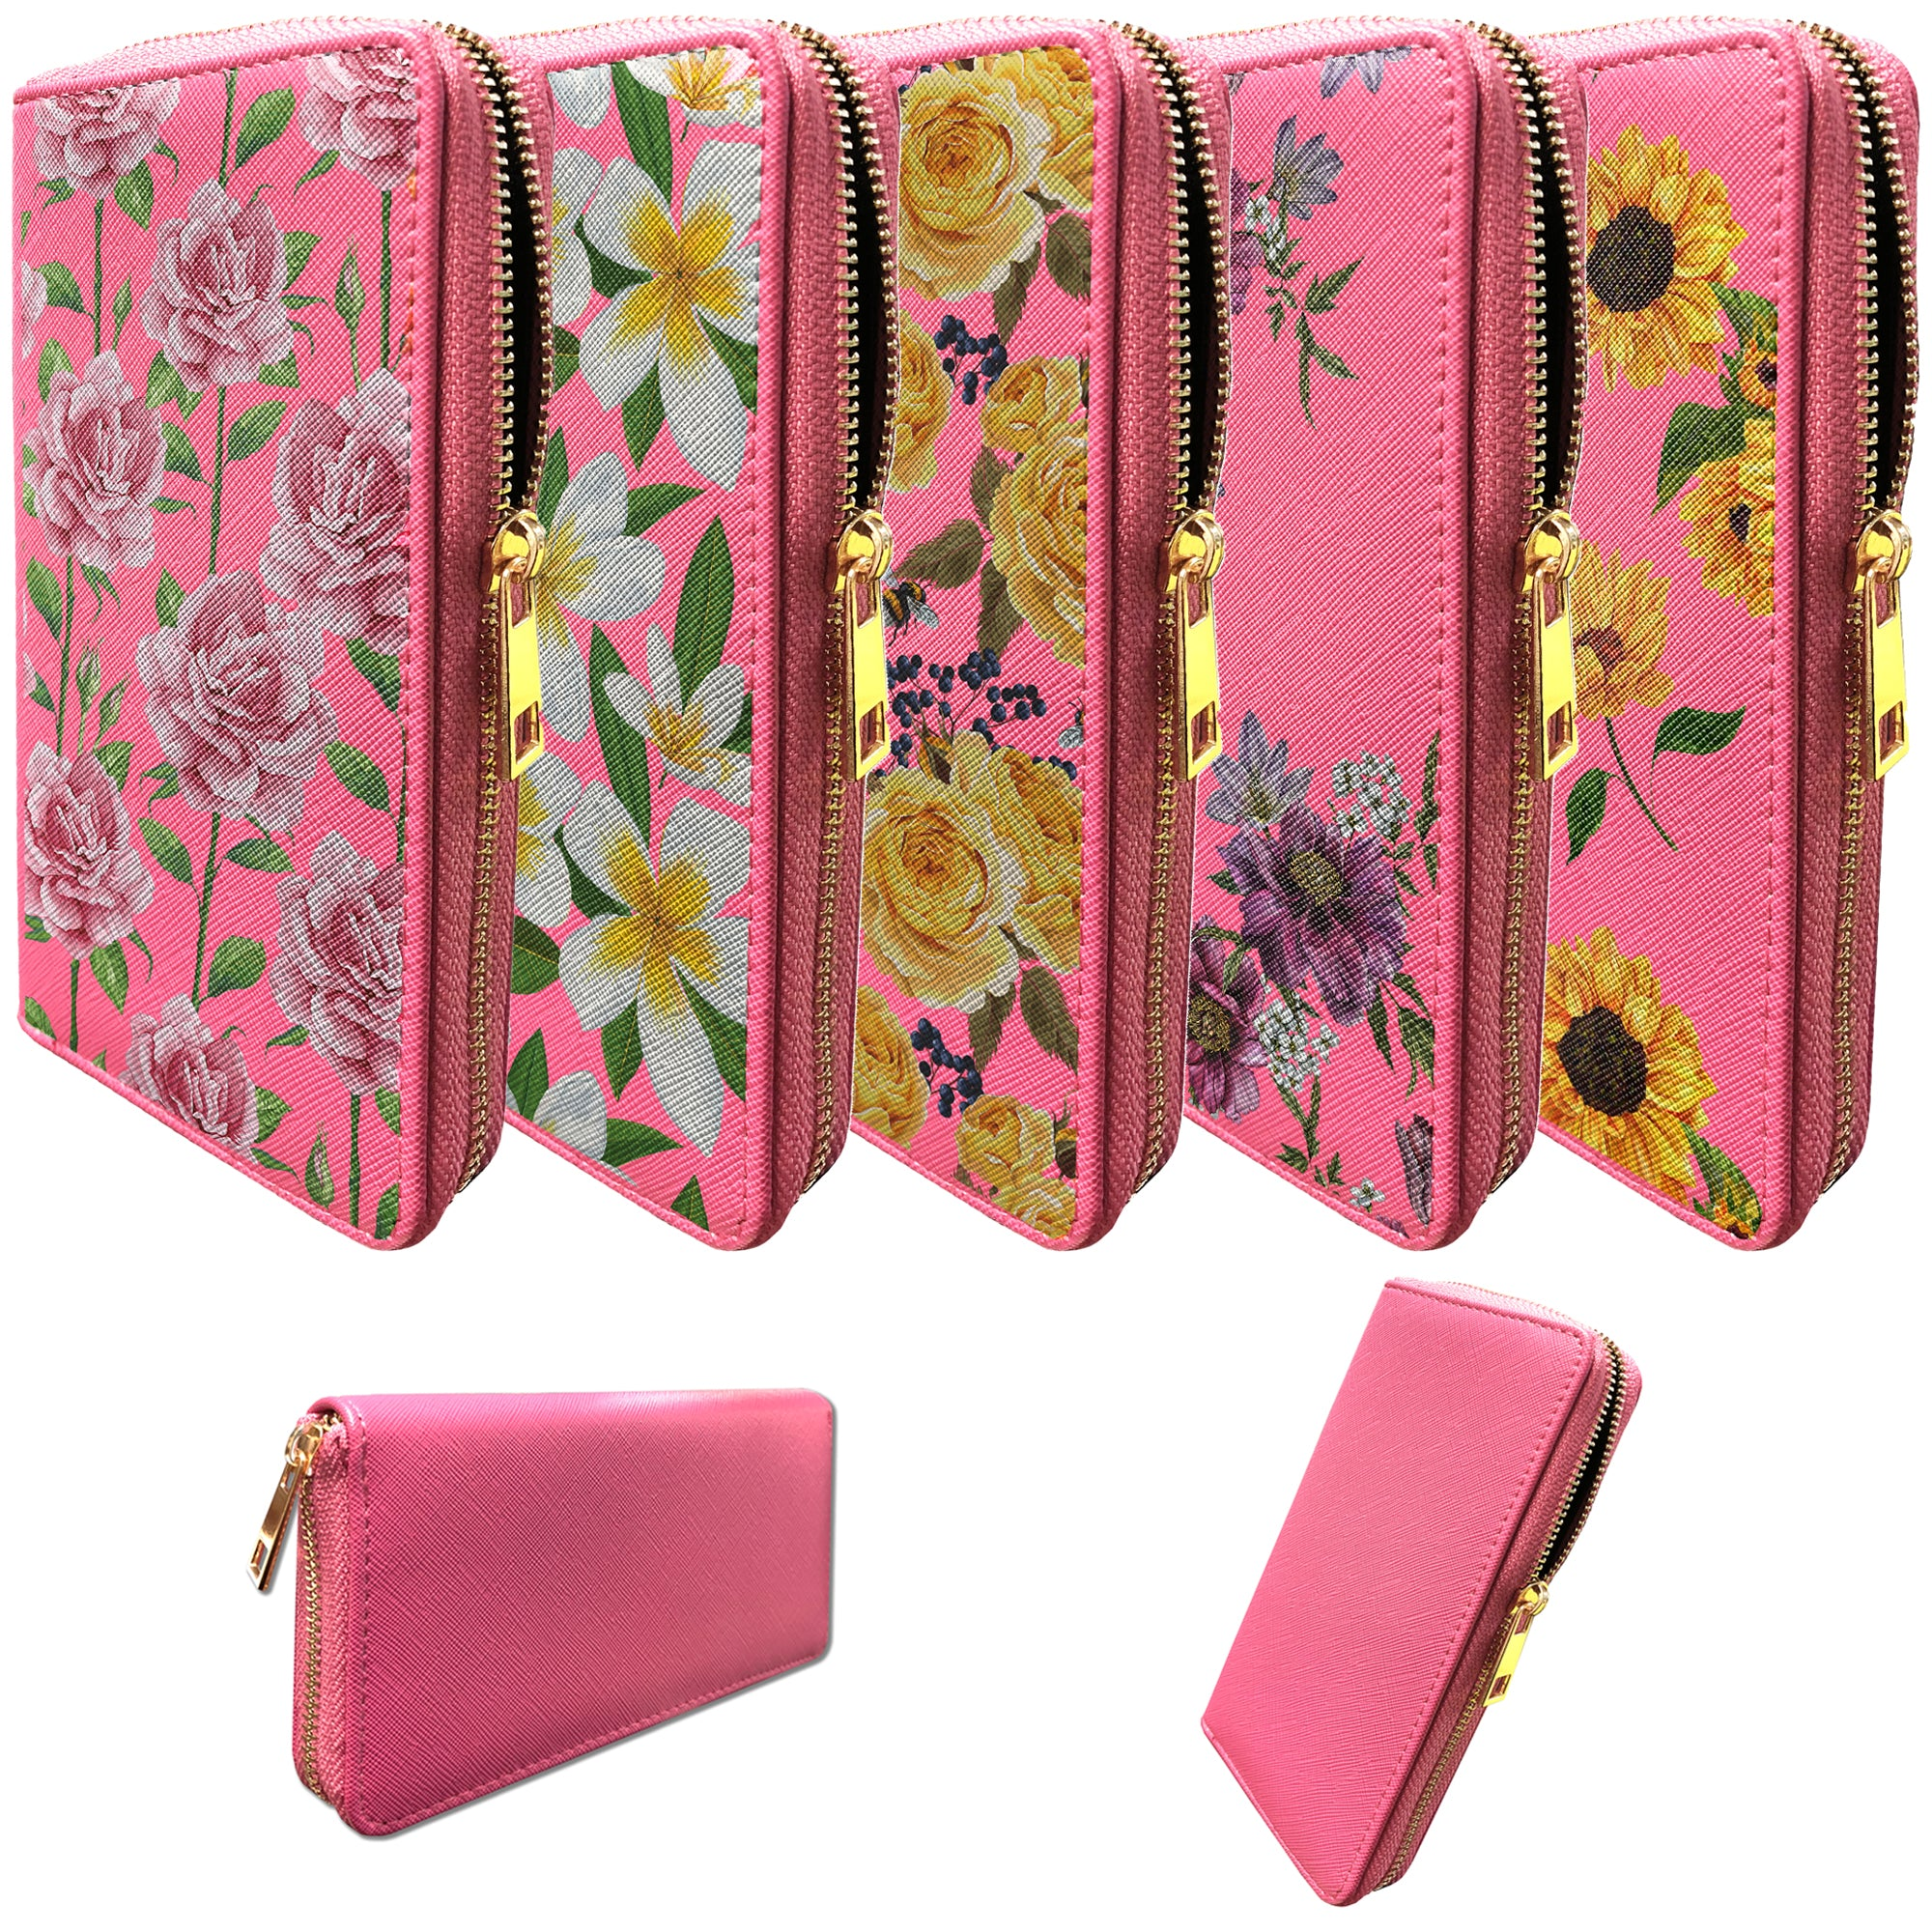 9acaf01c20c0 Details about Pink Wallet for Women | Clutch Wallet for Girls with Floral  Designs